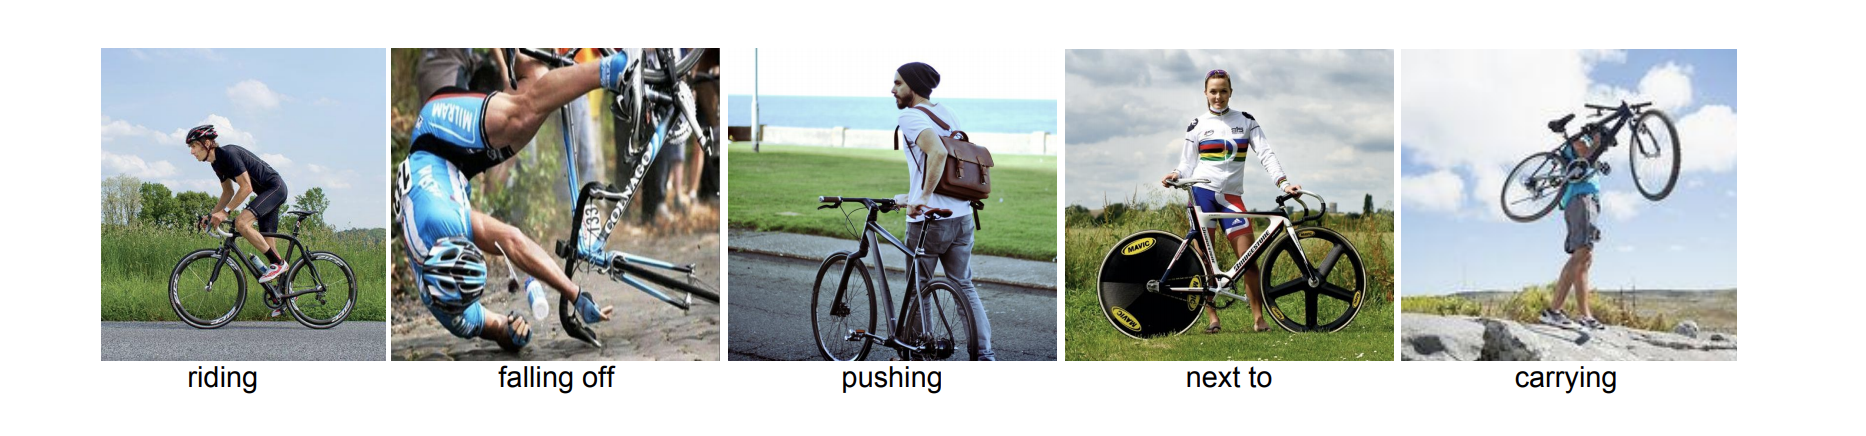 Visual Relationship Detection with Language Priors Image